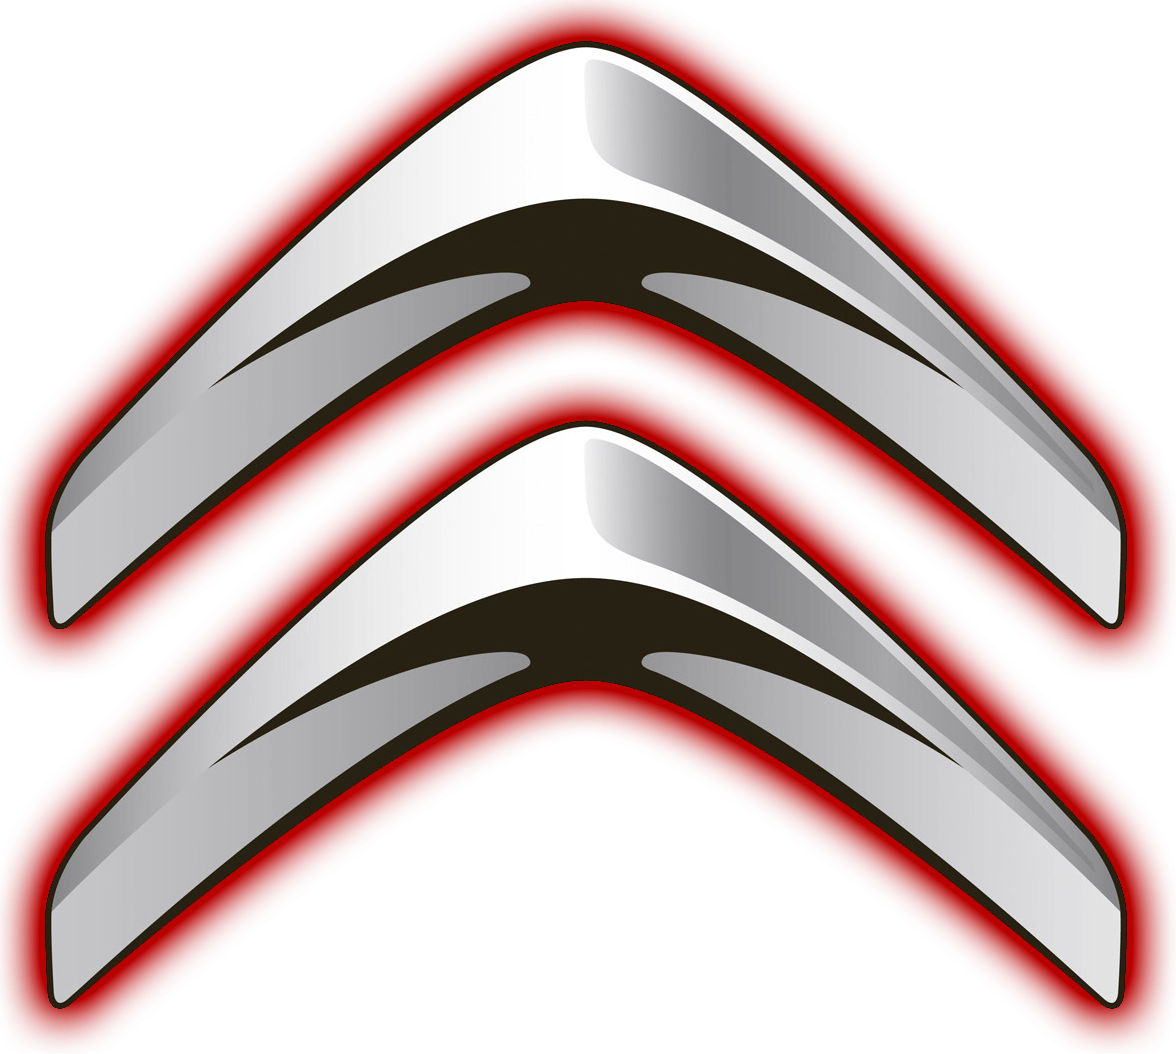 Citroen Logo - Citroen Logo, Citroen Car Symbol Meaning and History | Car Brand ...